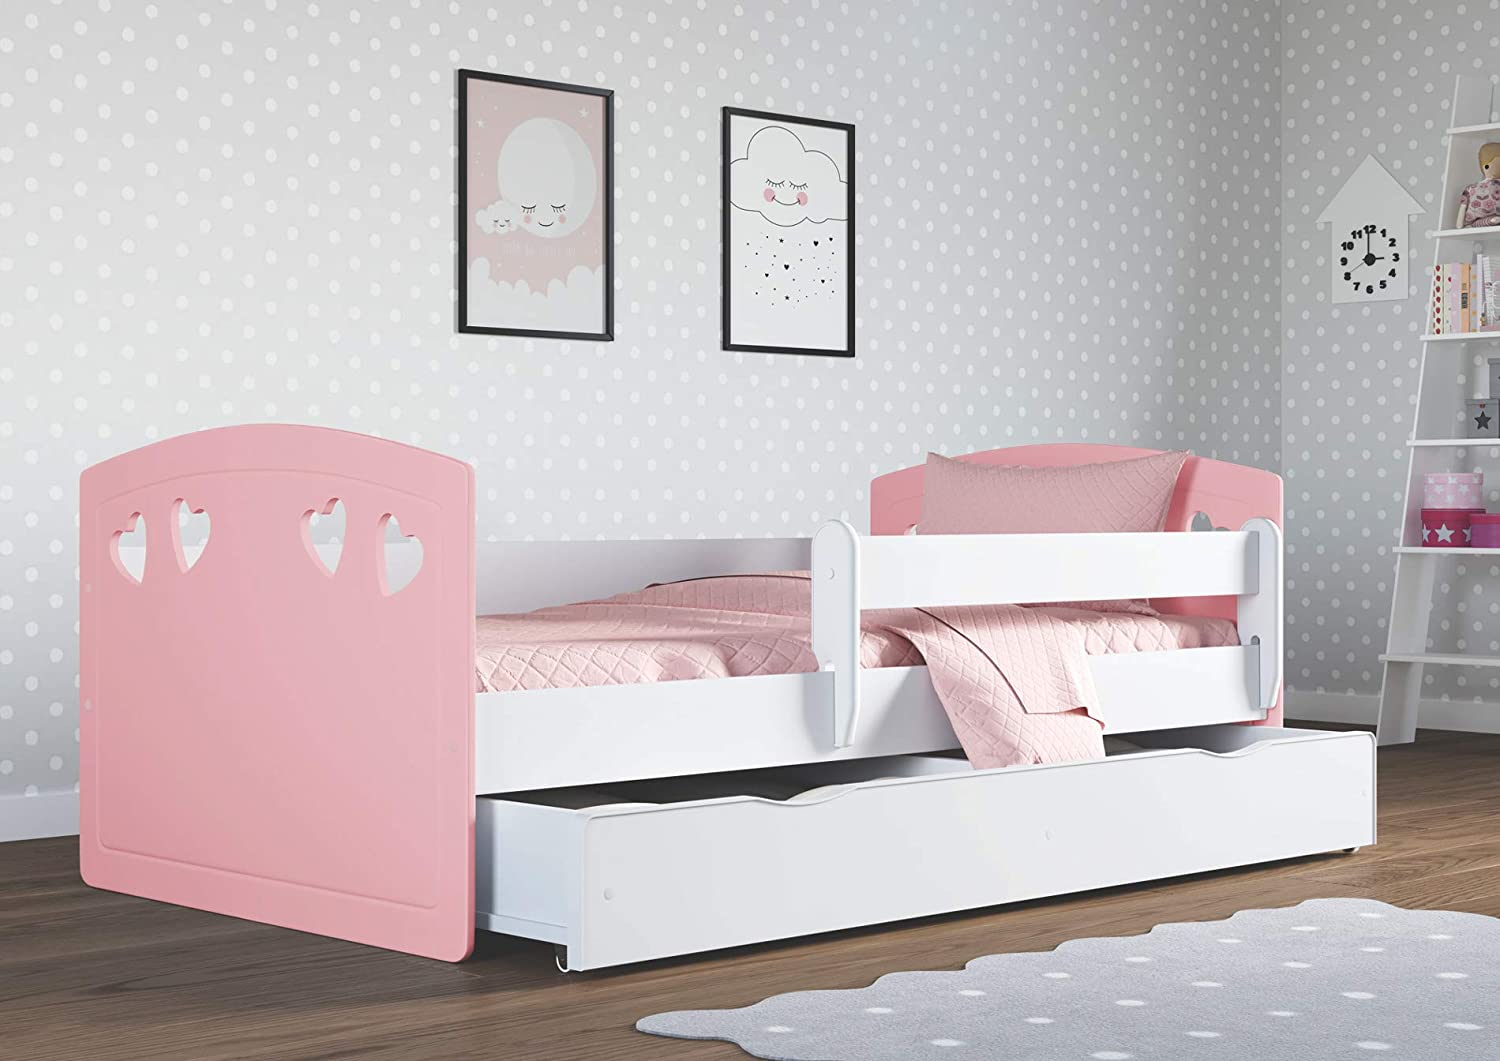 Pale Pink Children Bed with Mattress Included 70x140 80x160 80x180 Toddler Bed Safety Rail and Drawer Included 140x80 Perfect for Girls